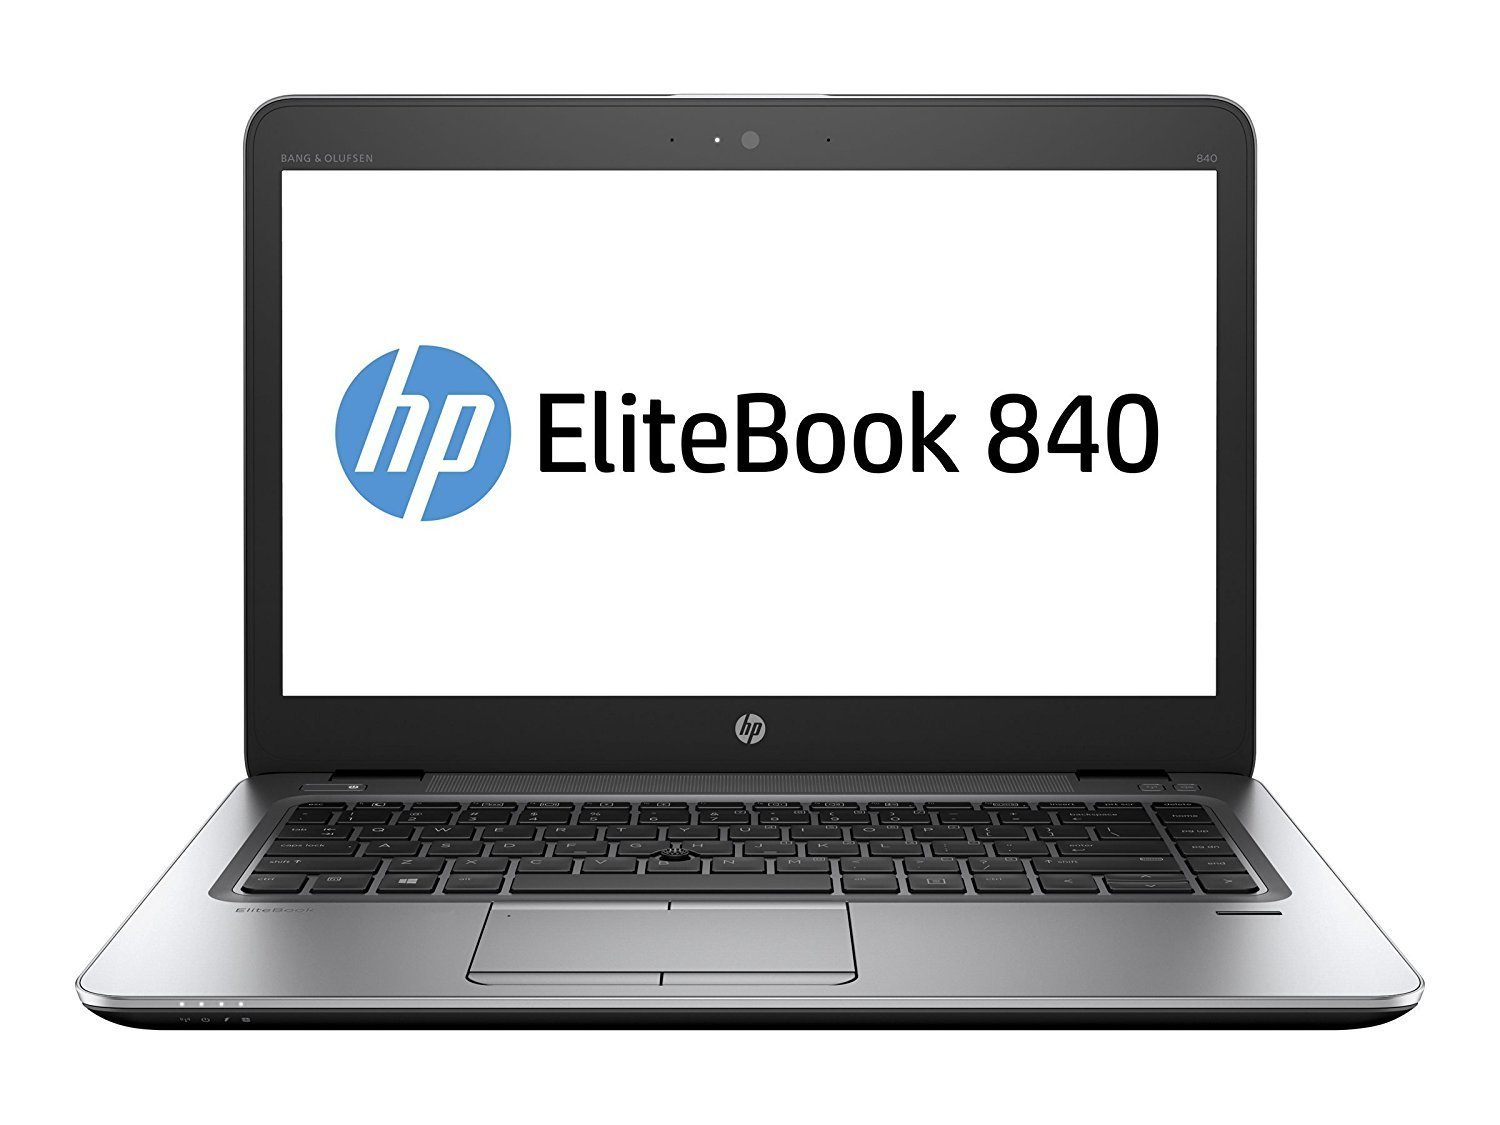 2018 HP Elitebook 840 G3 14'' FHD LED Laptop Computer, Intel Core i5-6200U up to 2.80GHz, 8GB DDR4, 1TB HDD, Media Card Reader, 720p Camera, Windows 10 Professional (Certified Refurbishd)